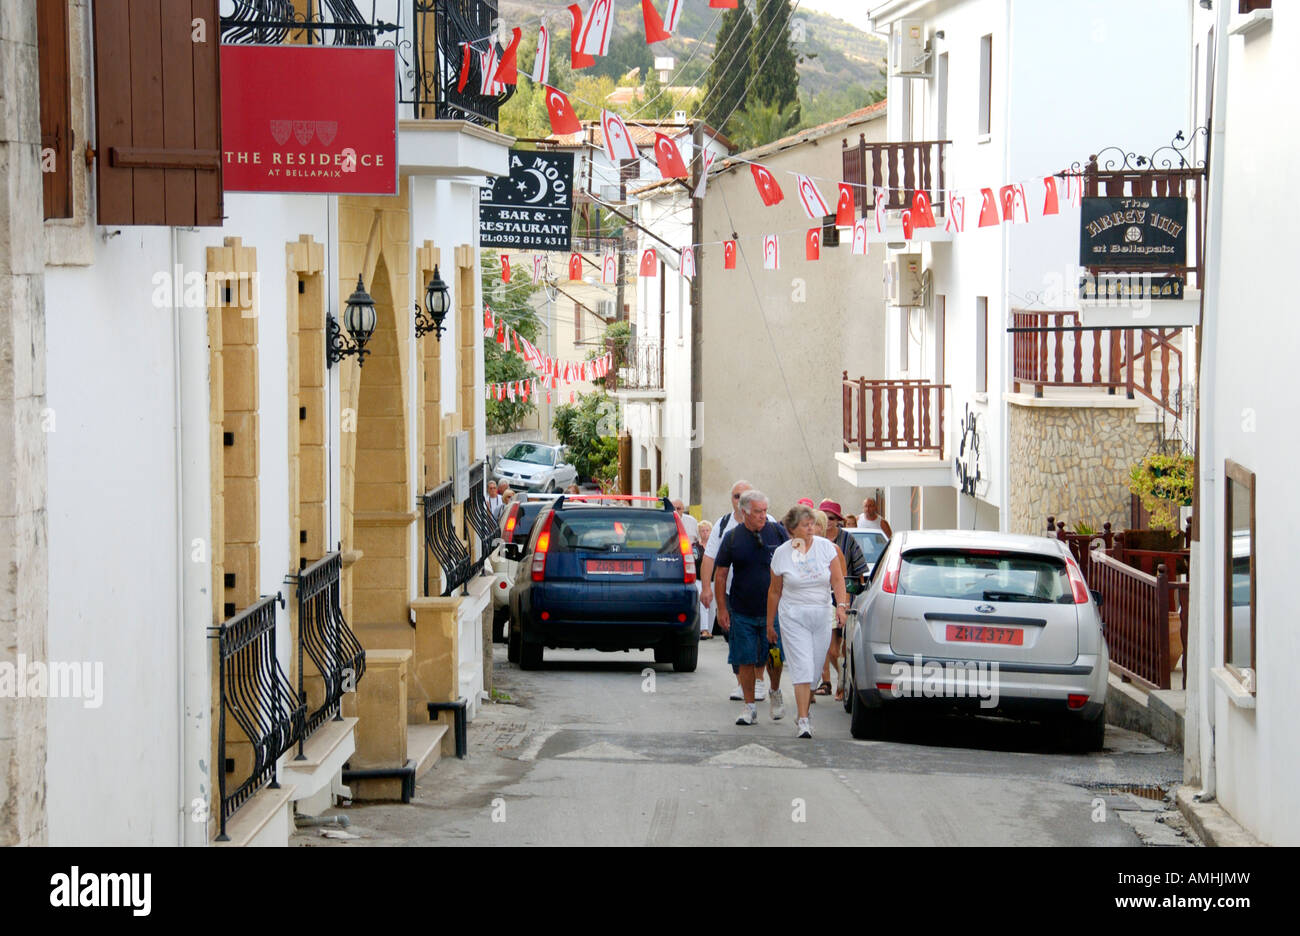 Street scene in Bellapais village on the Mediterranean island of Cyprus in the Turkish controlled northern region - Stock Image